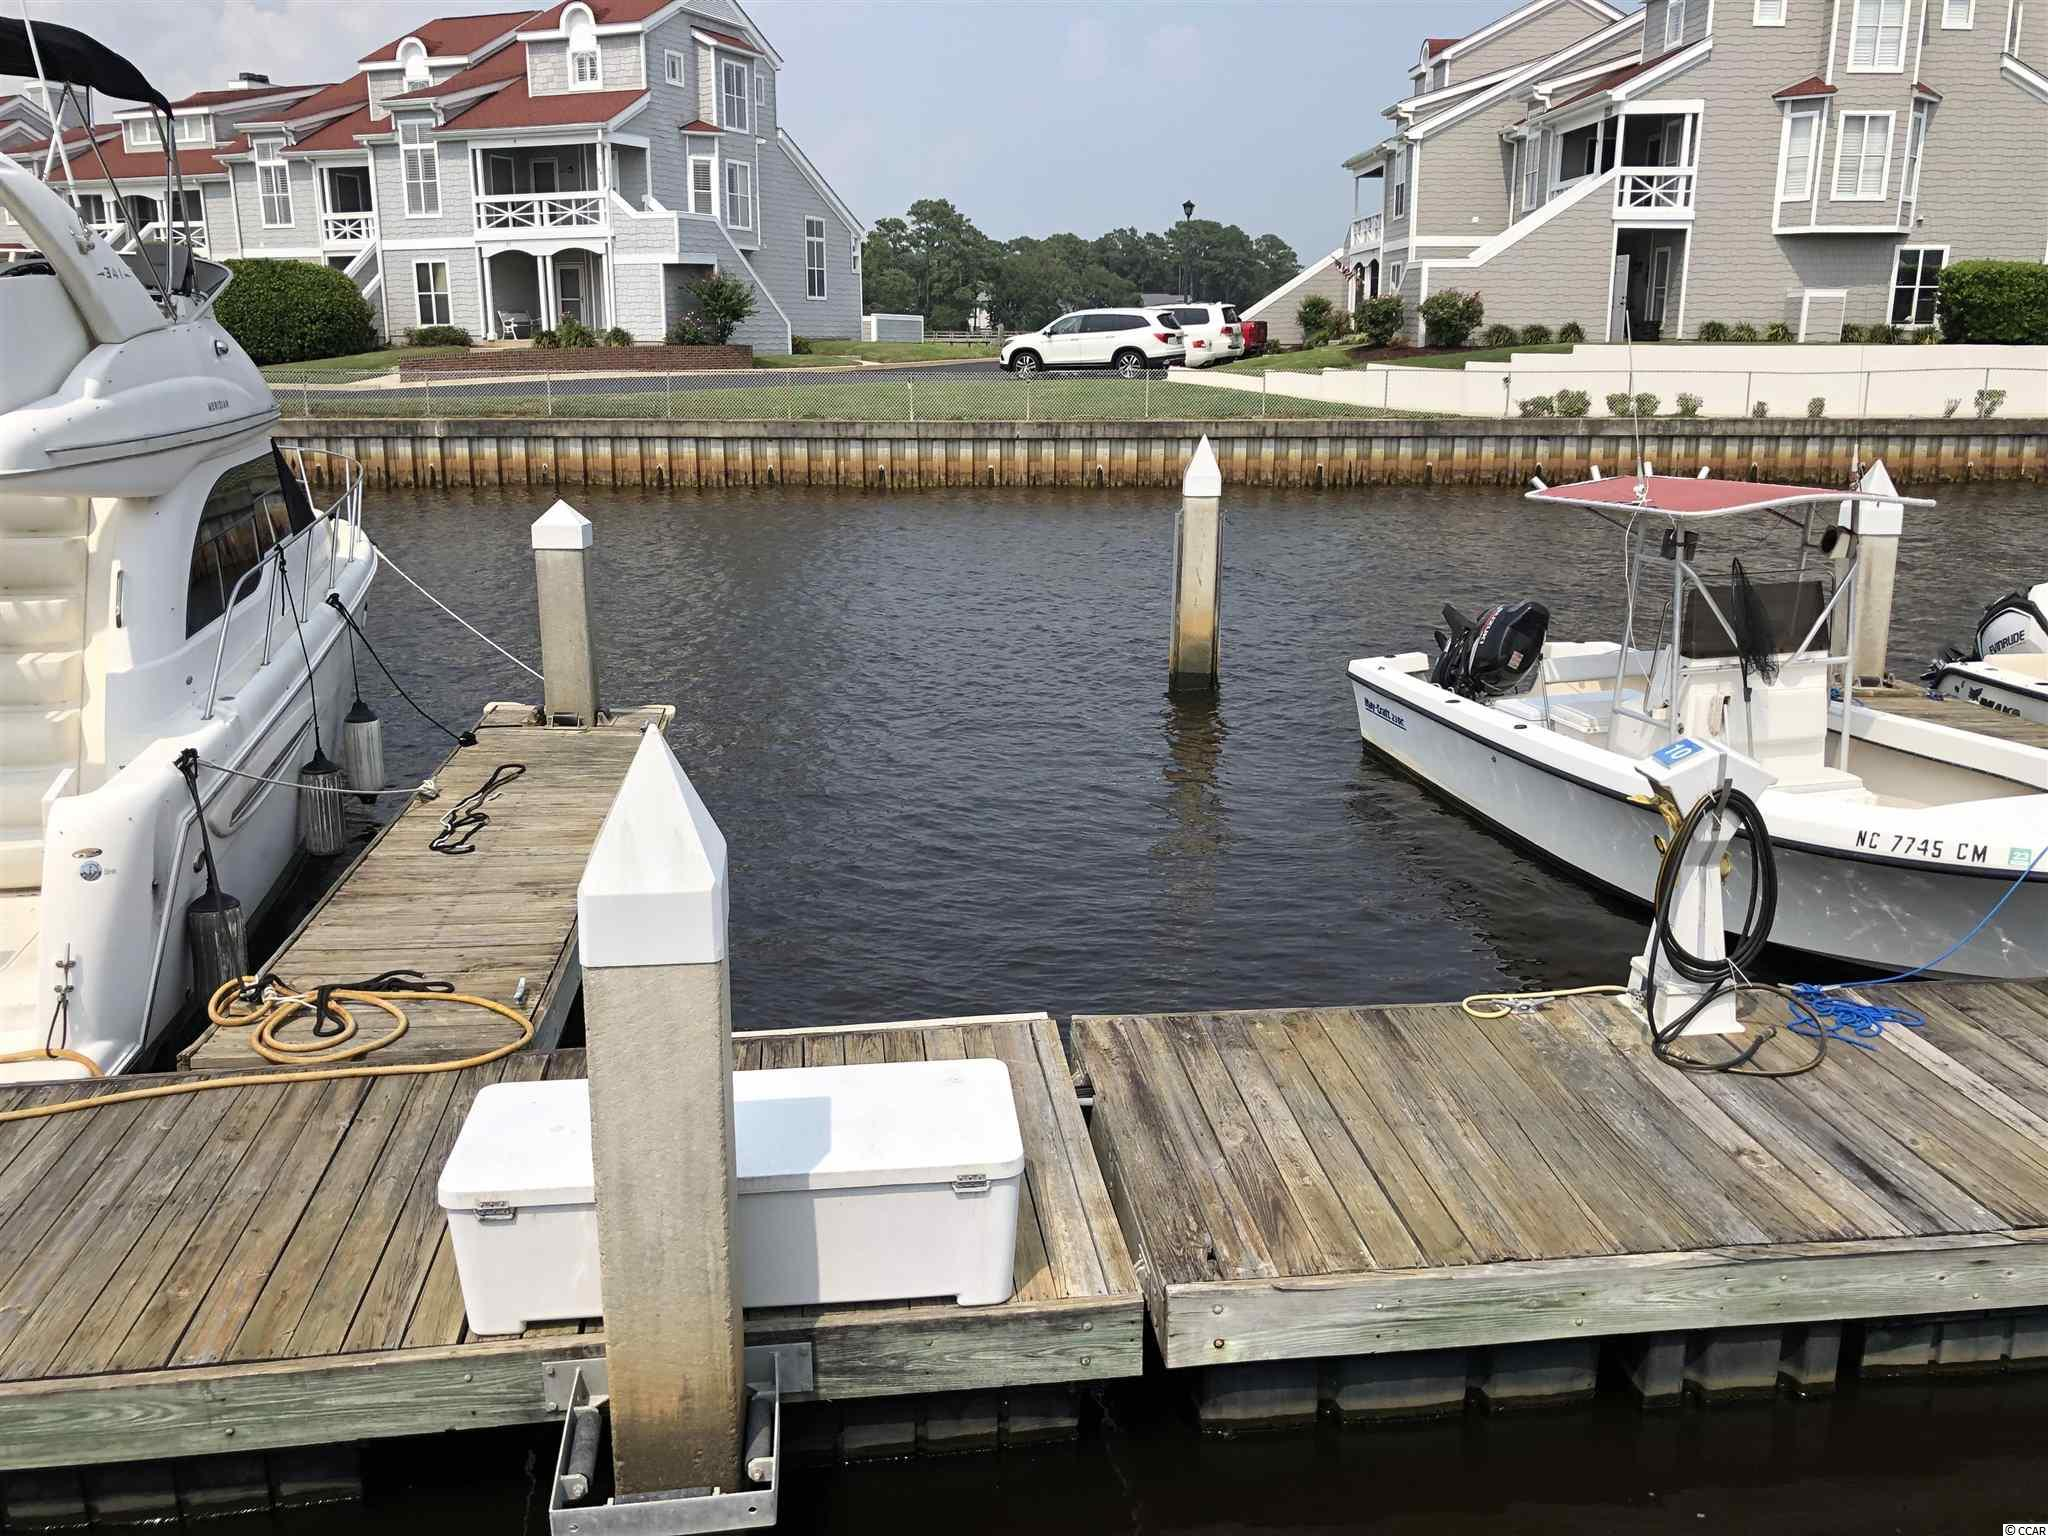 Looking for a 32-foot boat slip?  This is the perfect location at Mariners Pointe in Little River easy access to the ICW and a few miles to the ocean.